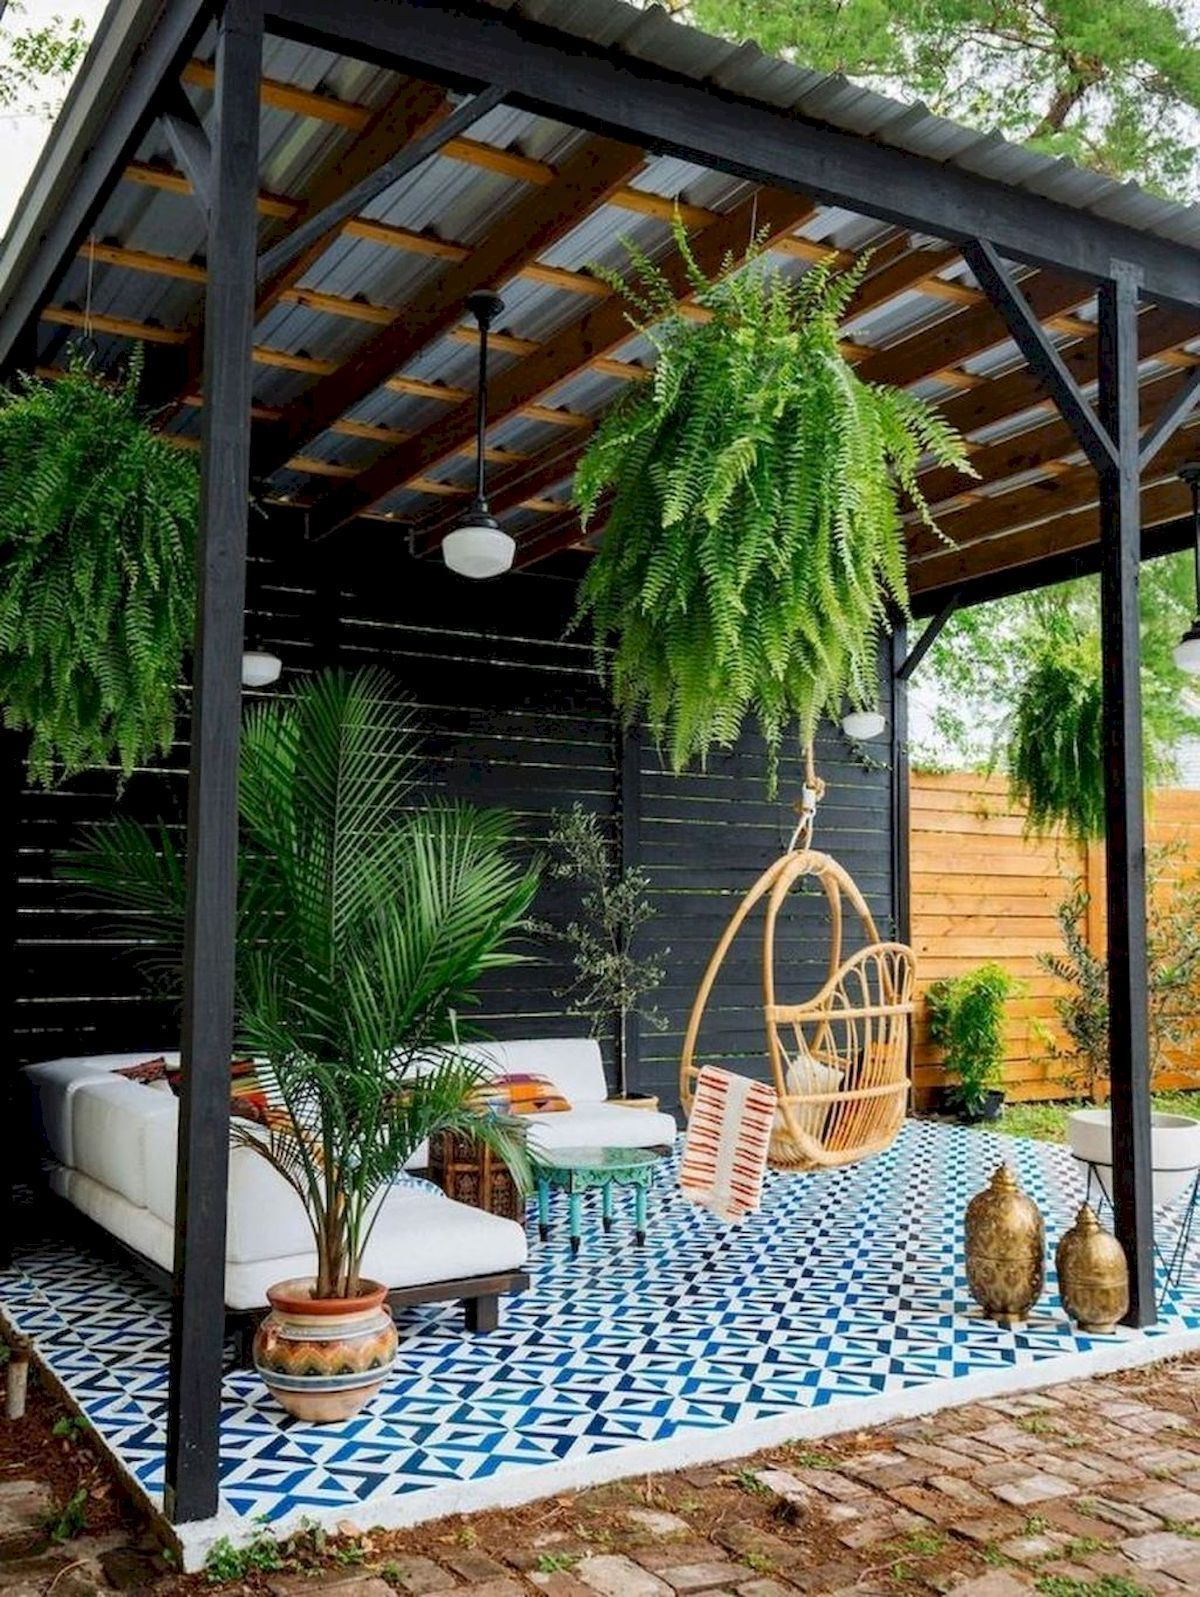 52 Most Creative Cheap Backyard Patio Ideas On A Budget Embellir